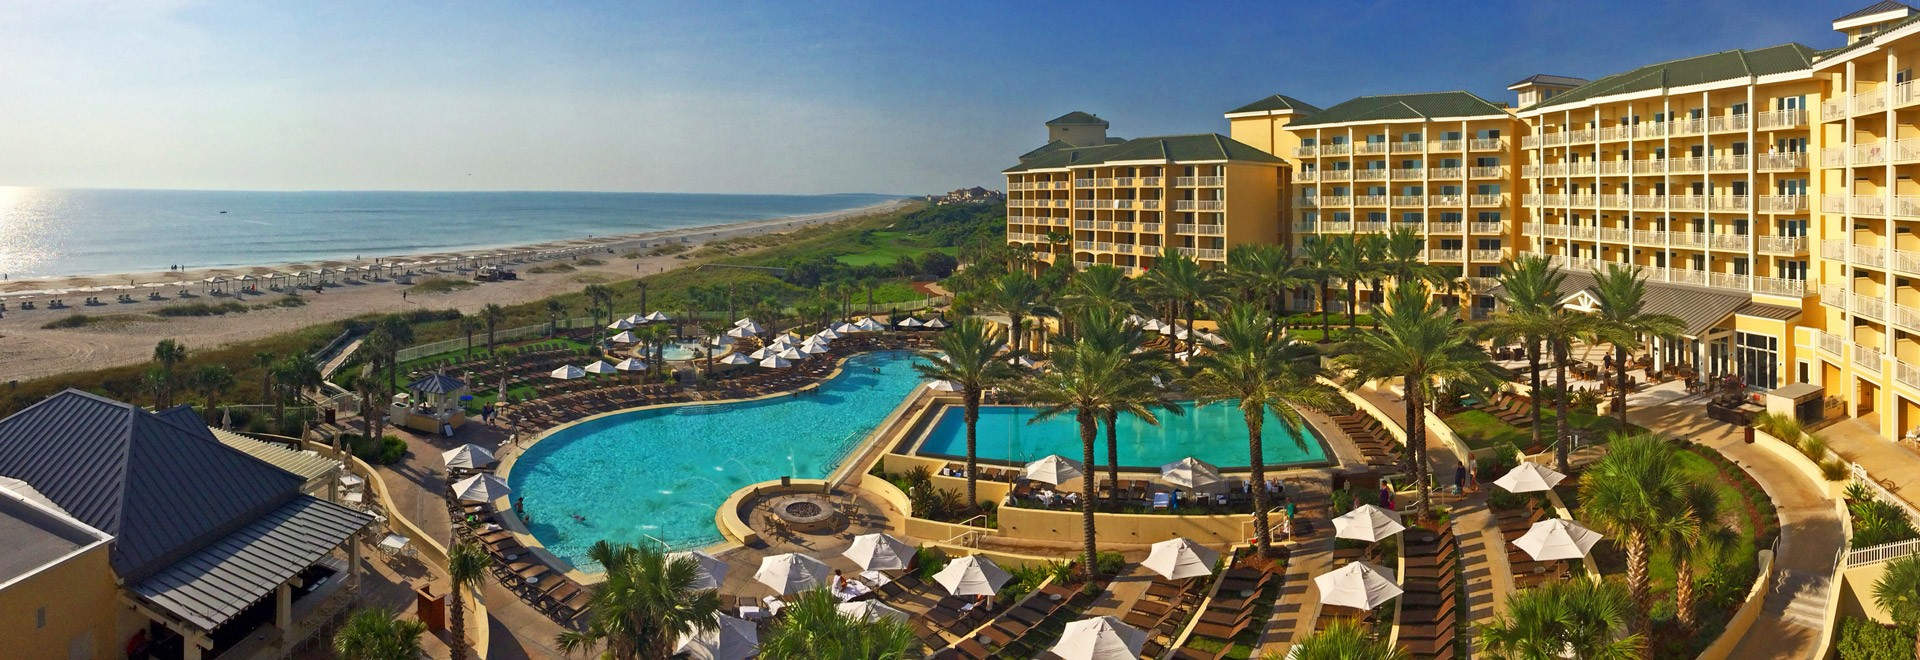 Omni's Amelia Island Plantation Resort